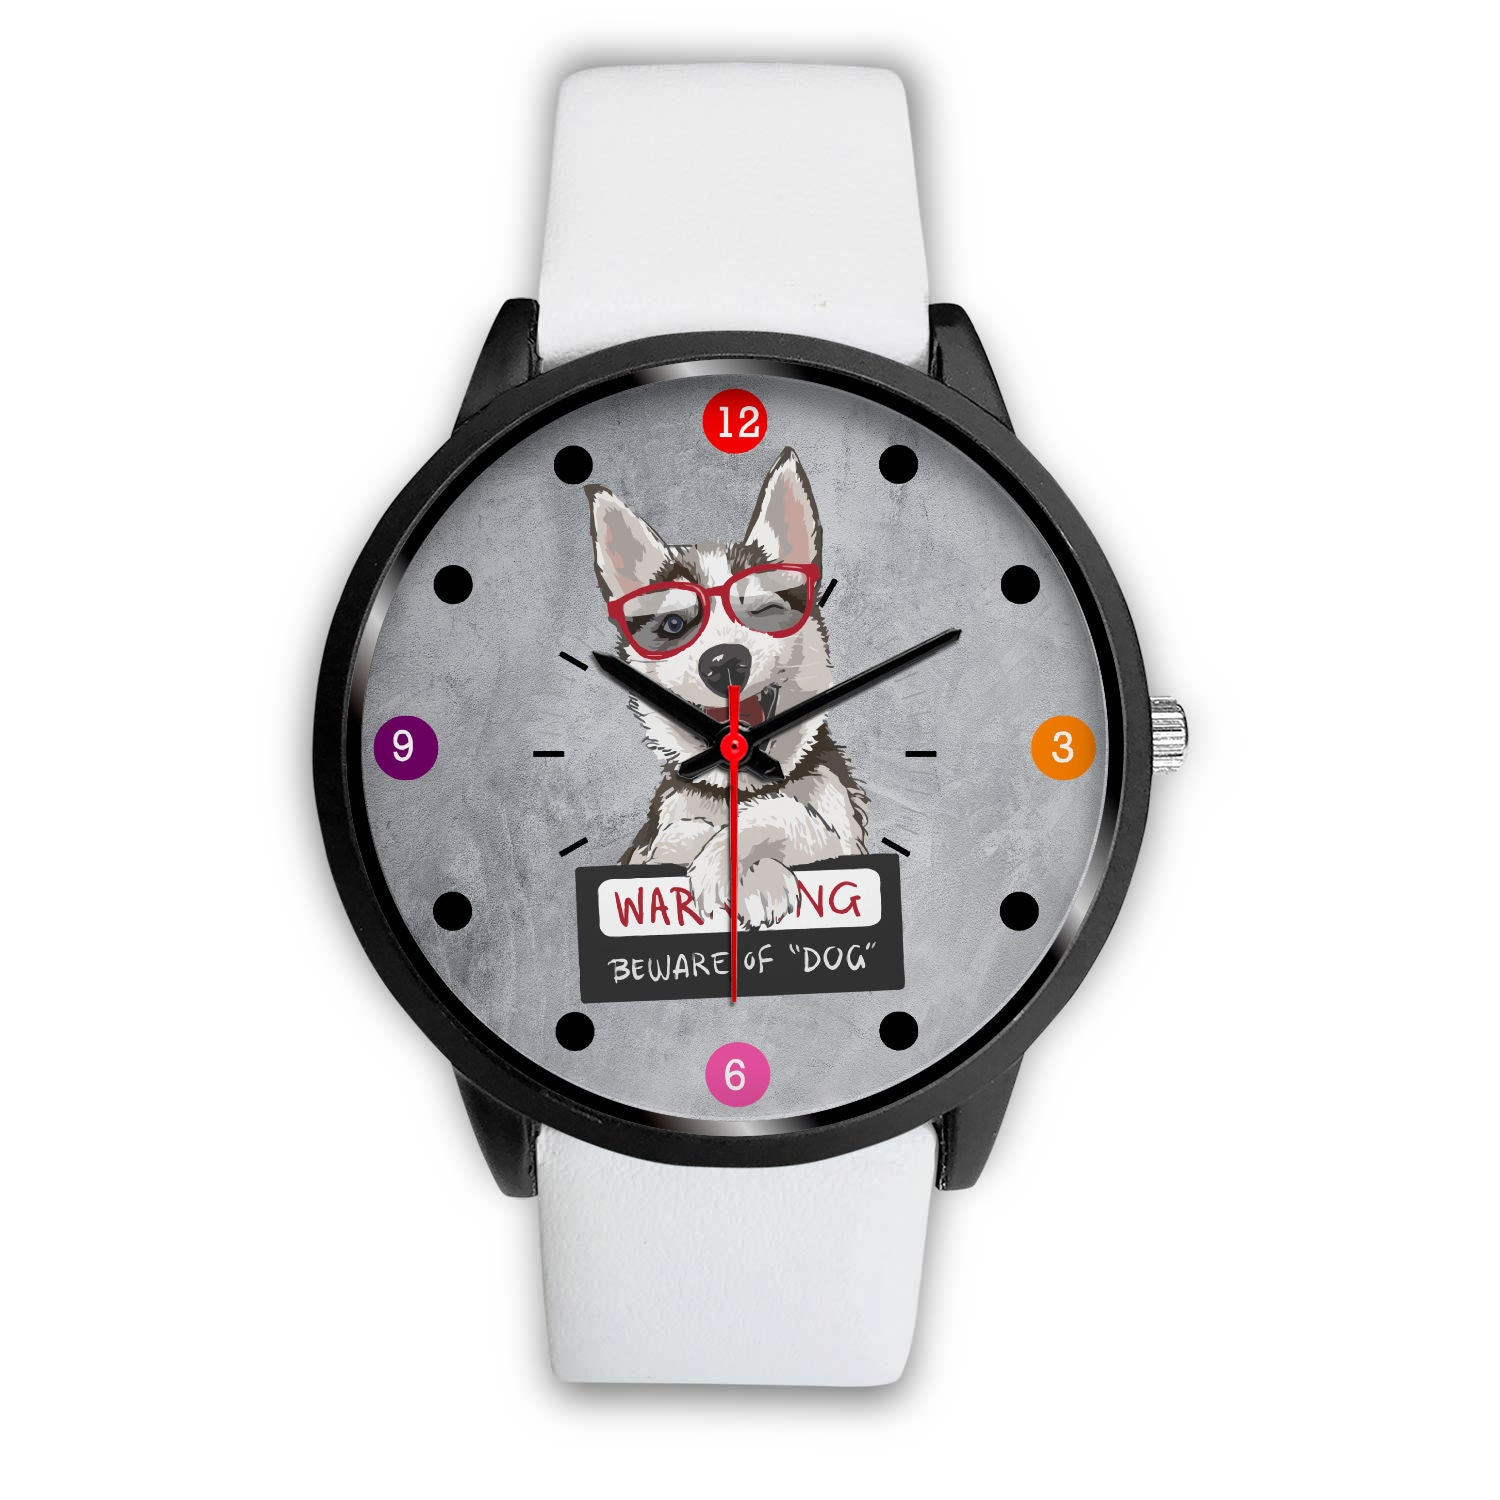 VIRA Black Stainless Steel Watch FOR HUSKY LOVERS